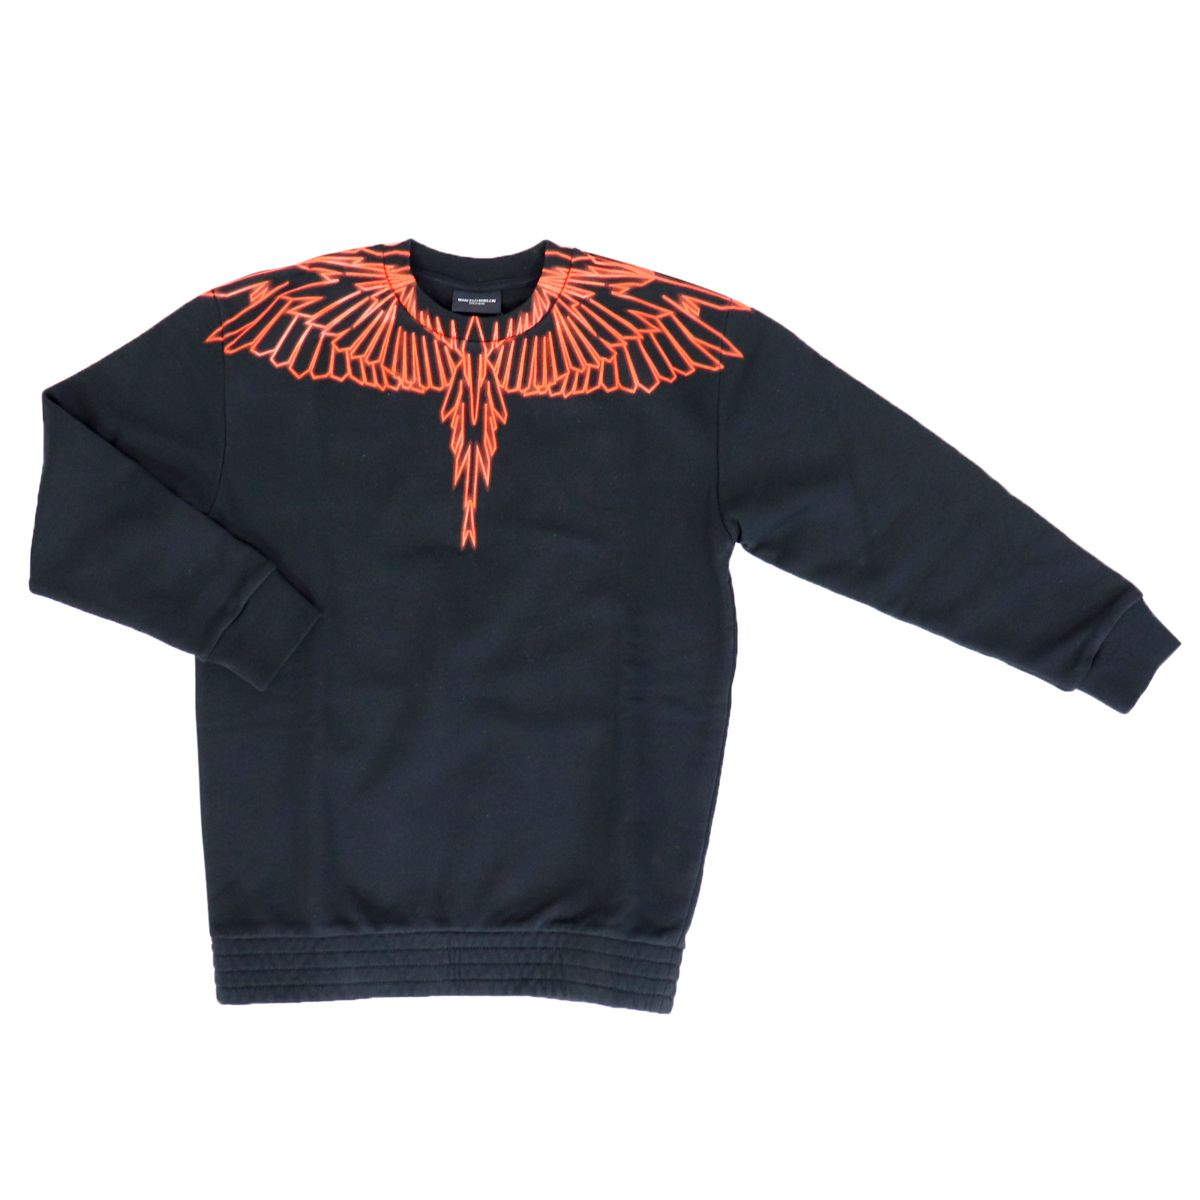 Cotton crewneck sweatshirt with multicolor wings print Black MARCELO BURLON